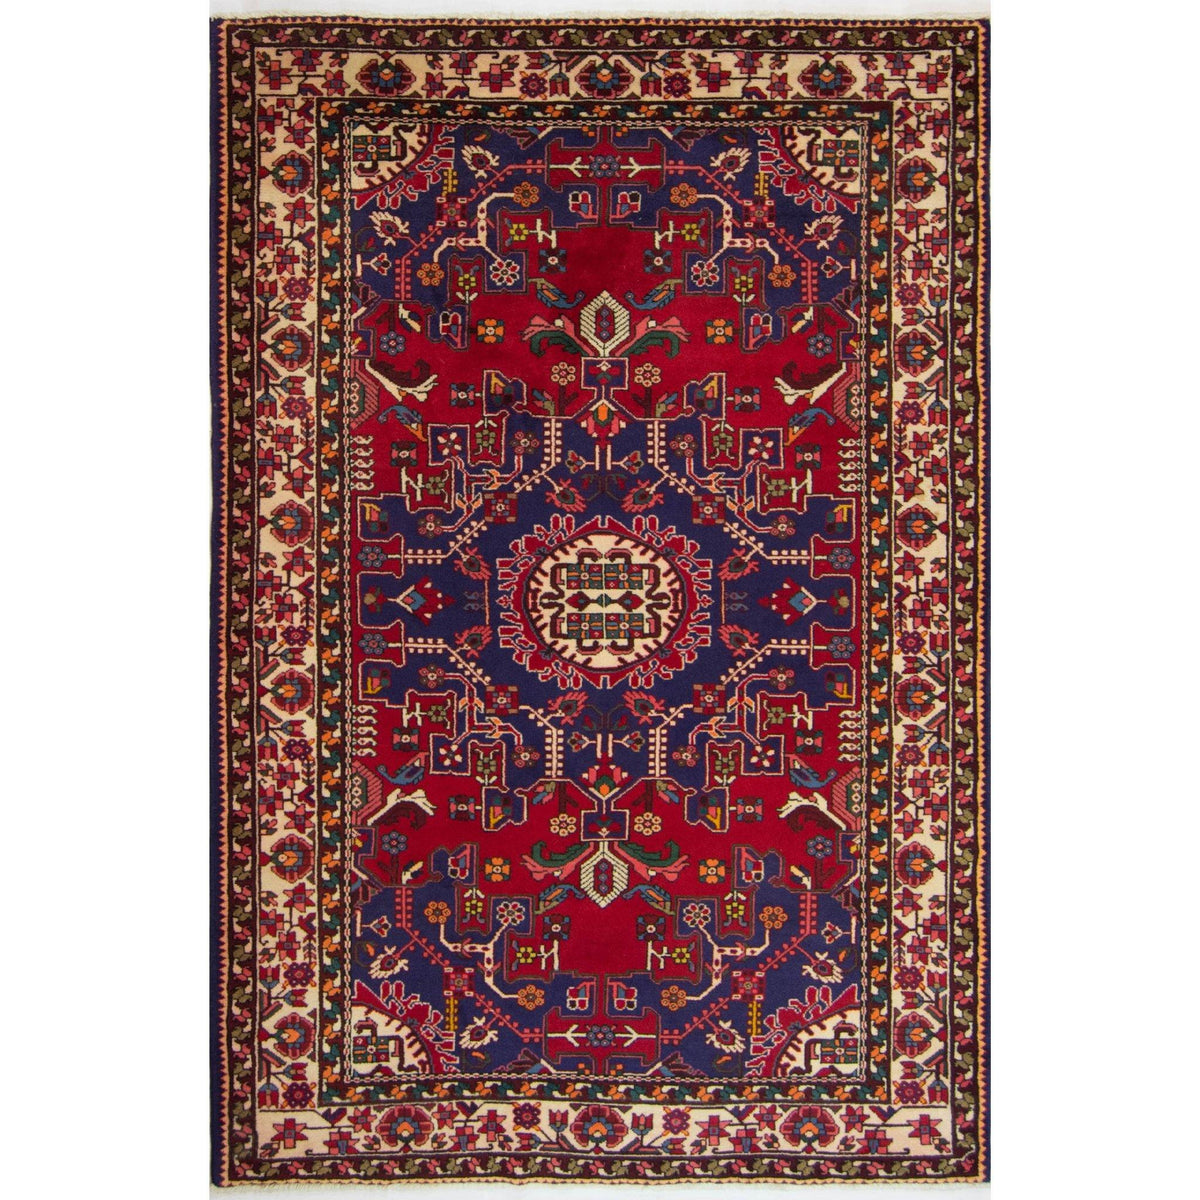 Authentic Hand-knotted Wool Persian Tafresh Rug 137cm x 202cm Persian-Rug | House-of-Haghi | NewMarket | Auckland | NZ | Handmade Persian Rugs | Hand Knotted Persian Rugs